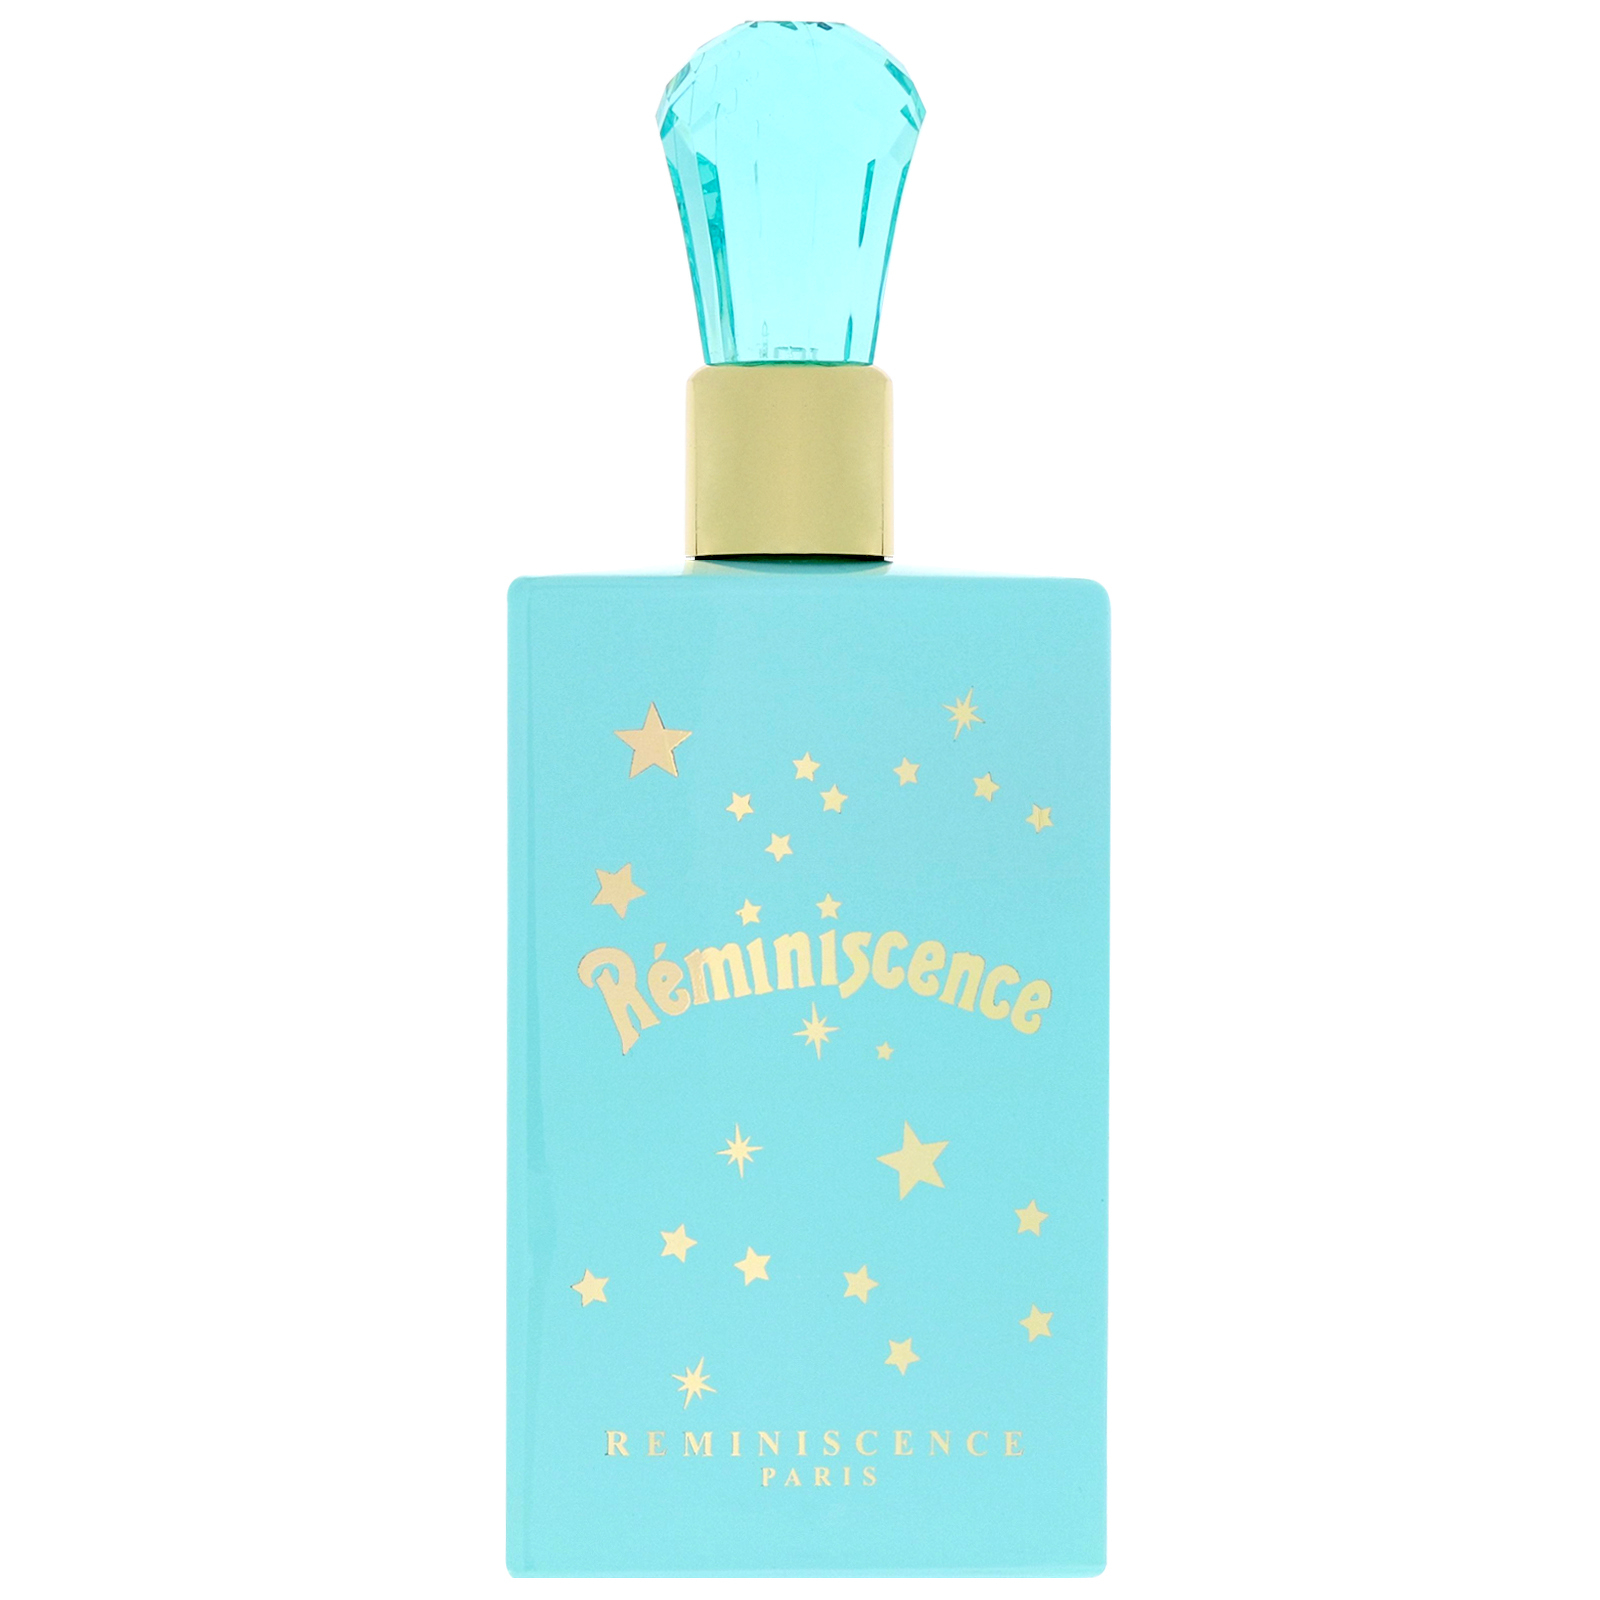 Reminiscence Reminiscence Eau de Parfum Spray 100ml